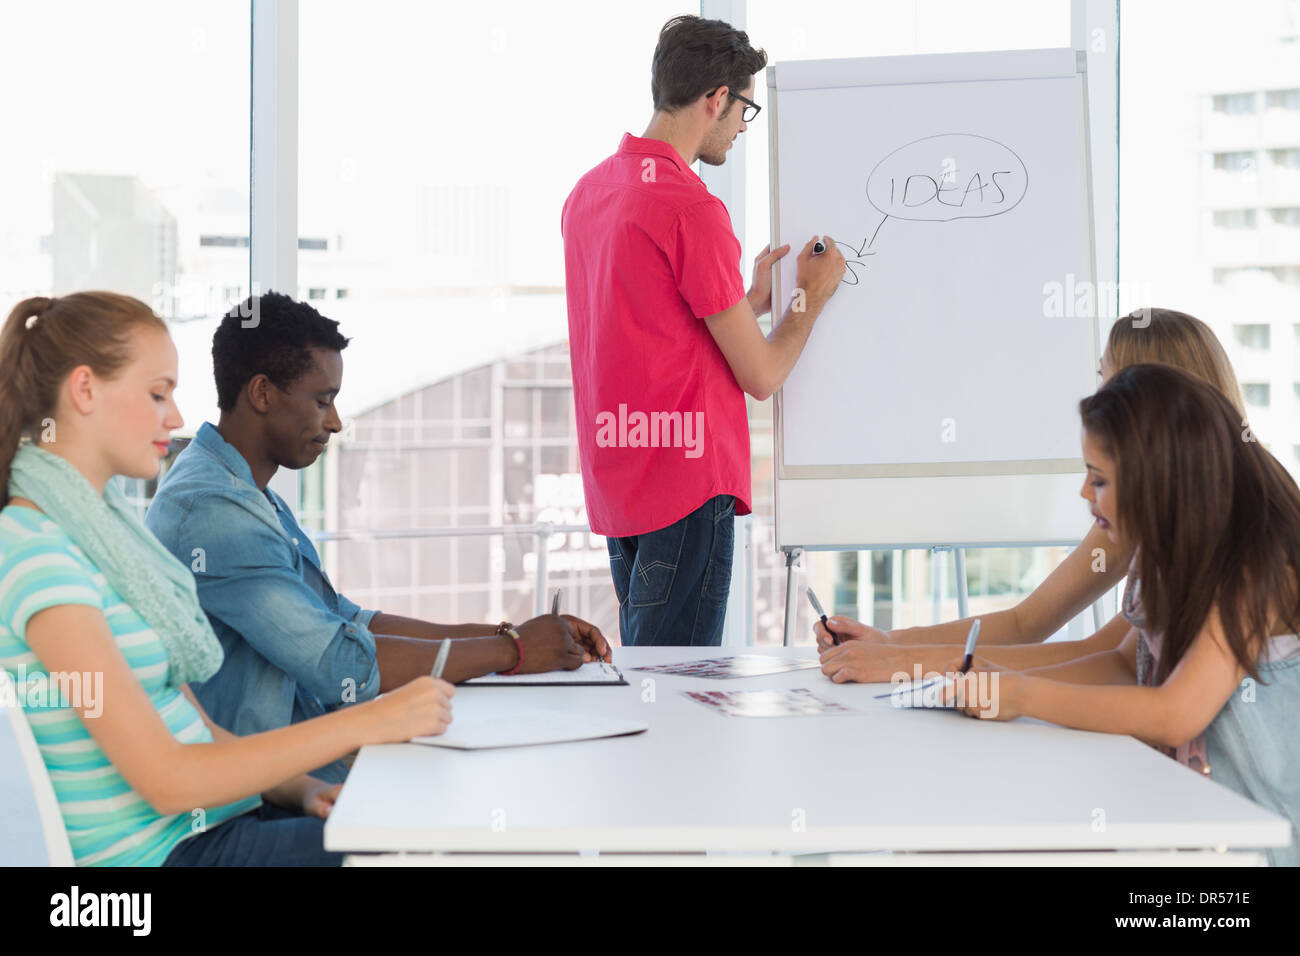 Business people in office at presentation Photo Stock